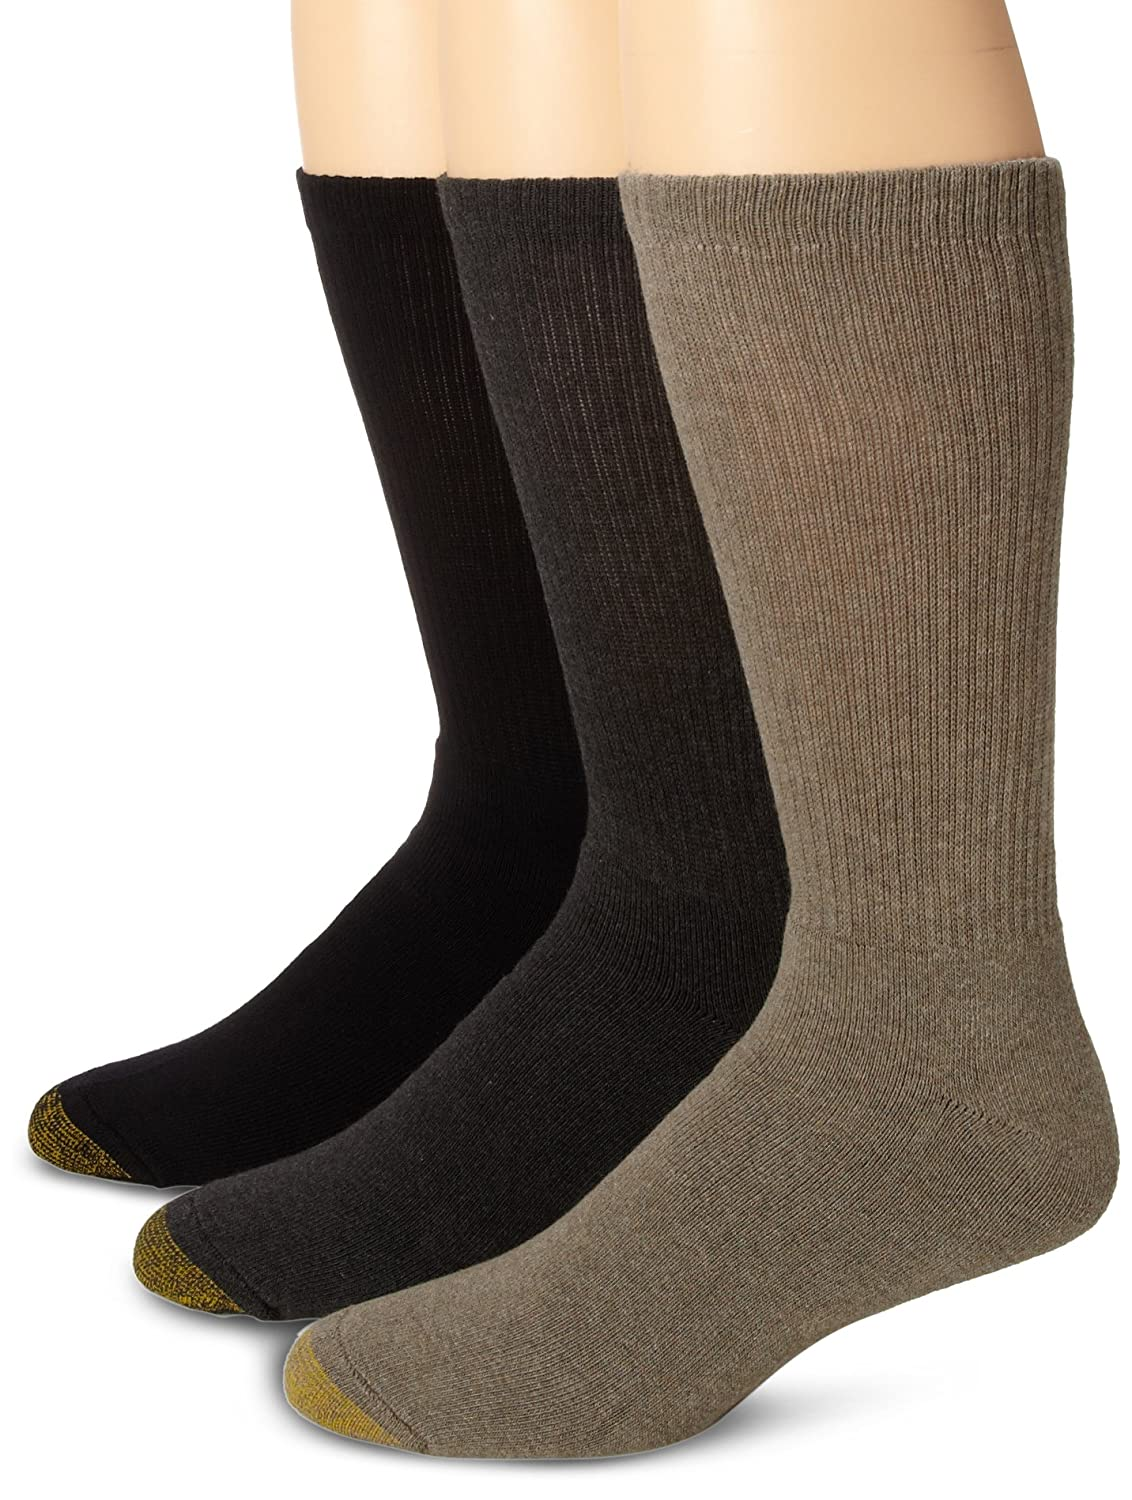 Gold Toe Men's Uptown Crew Three-Pack Socks Gold Toe Men' s Socks 2306S